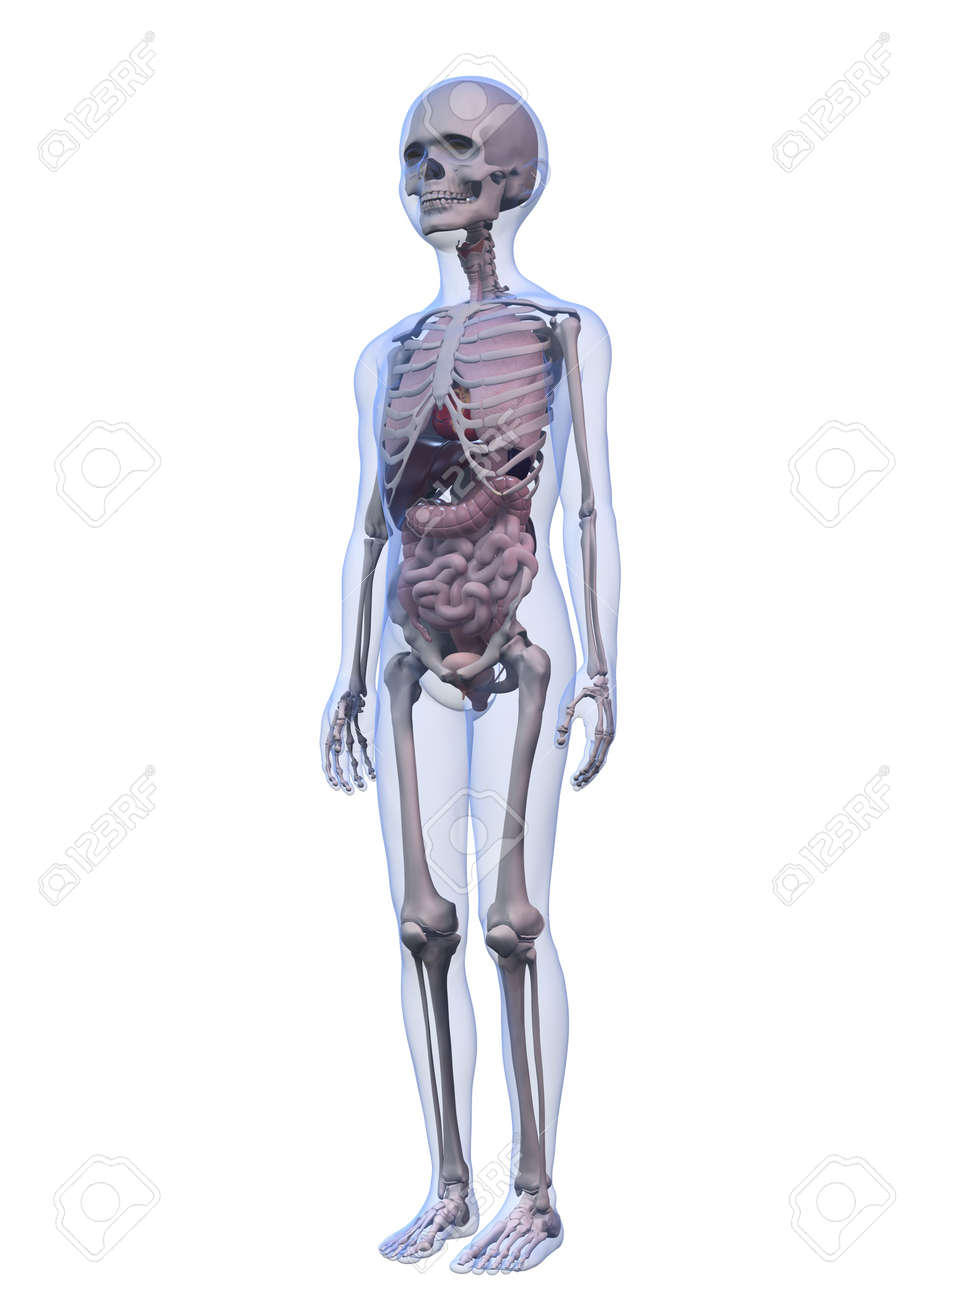 Male Child Anatomy Stock Photo, Picture And Royalty Free Image ...